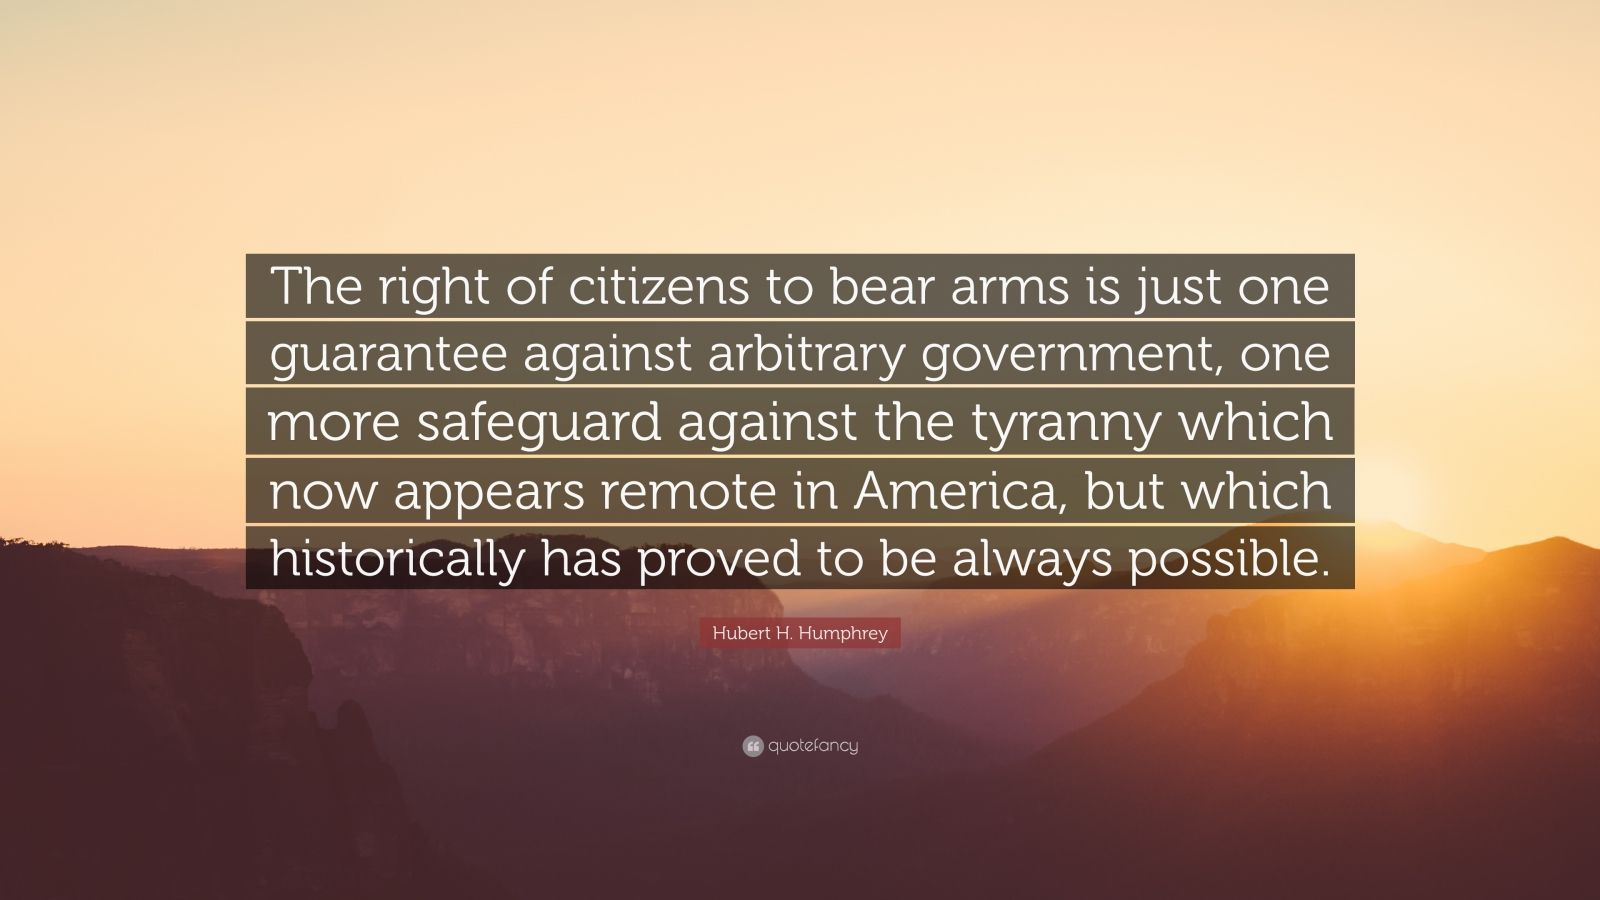 "Hubert H. Humphrey Quote: ""The right of citizens to bear arms is just one guarantee against arbitrary government, one more safeguard against the tyranny which now appears remote in America, but which historically has proved to be always possible."""